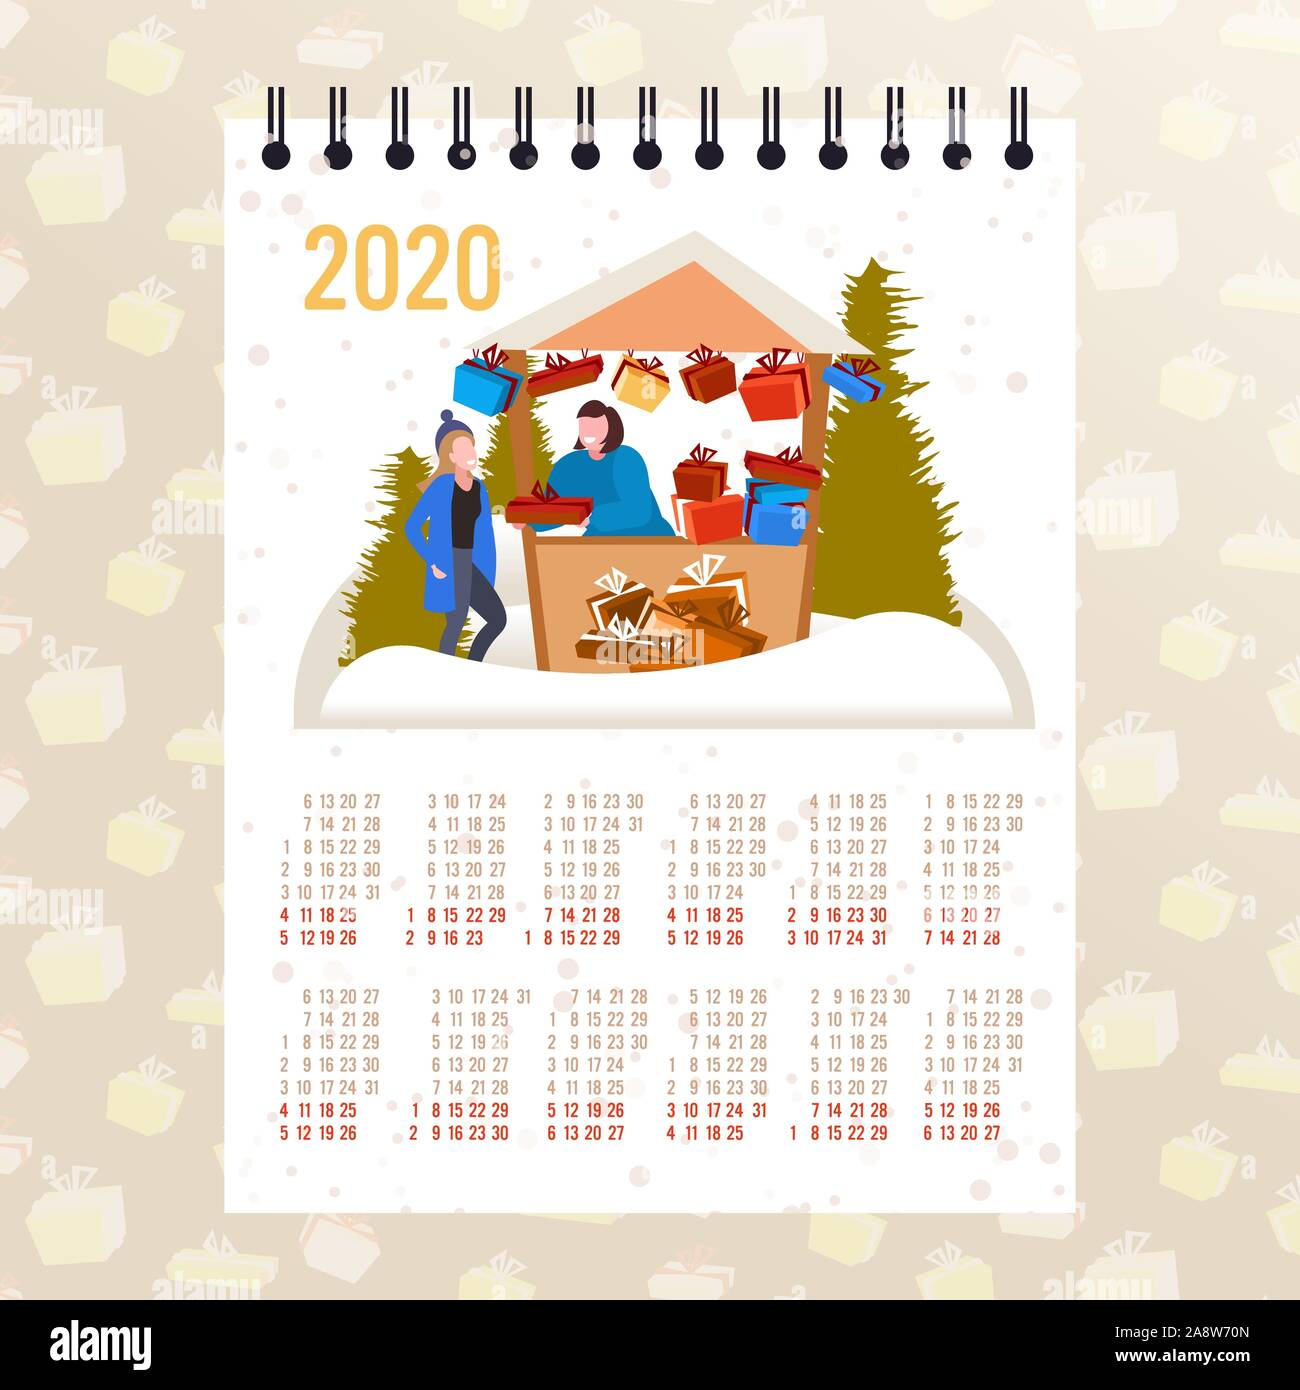 Stock Market Christmas Gifts 2020 woman buying present box in gifts stall moon 2020 calendar